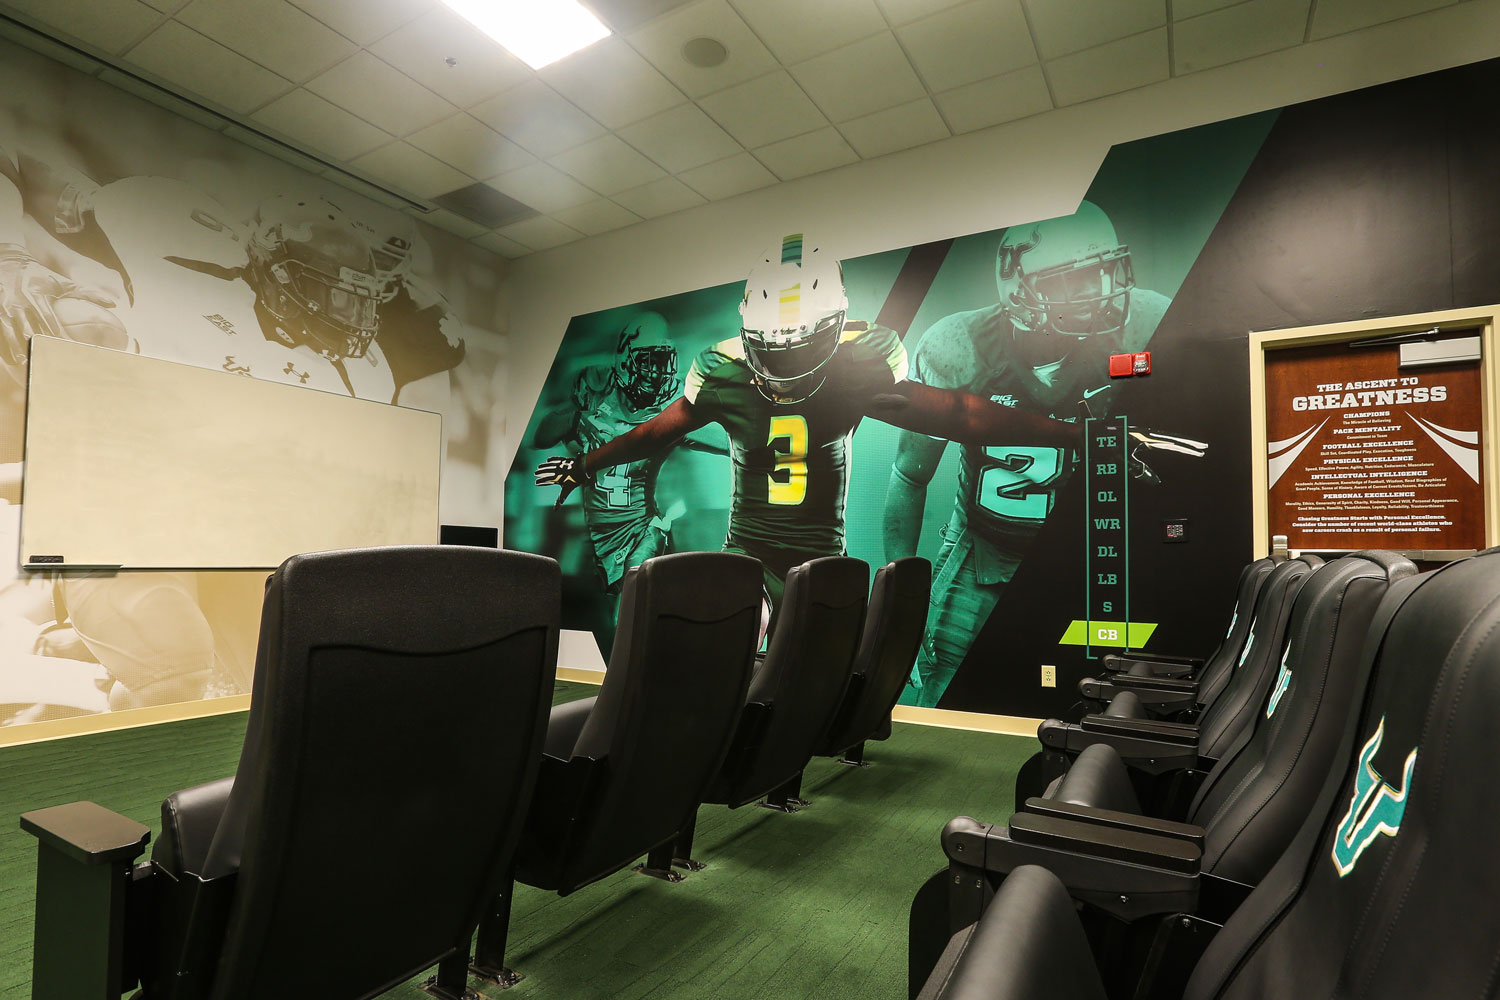 Usf Meeting Rooms